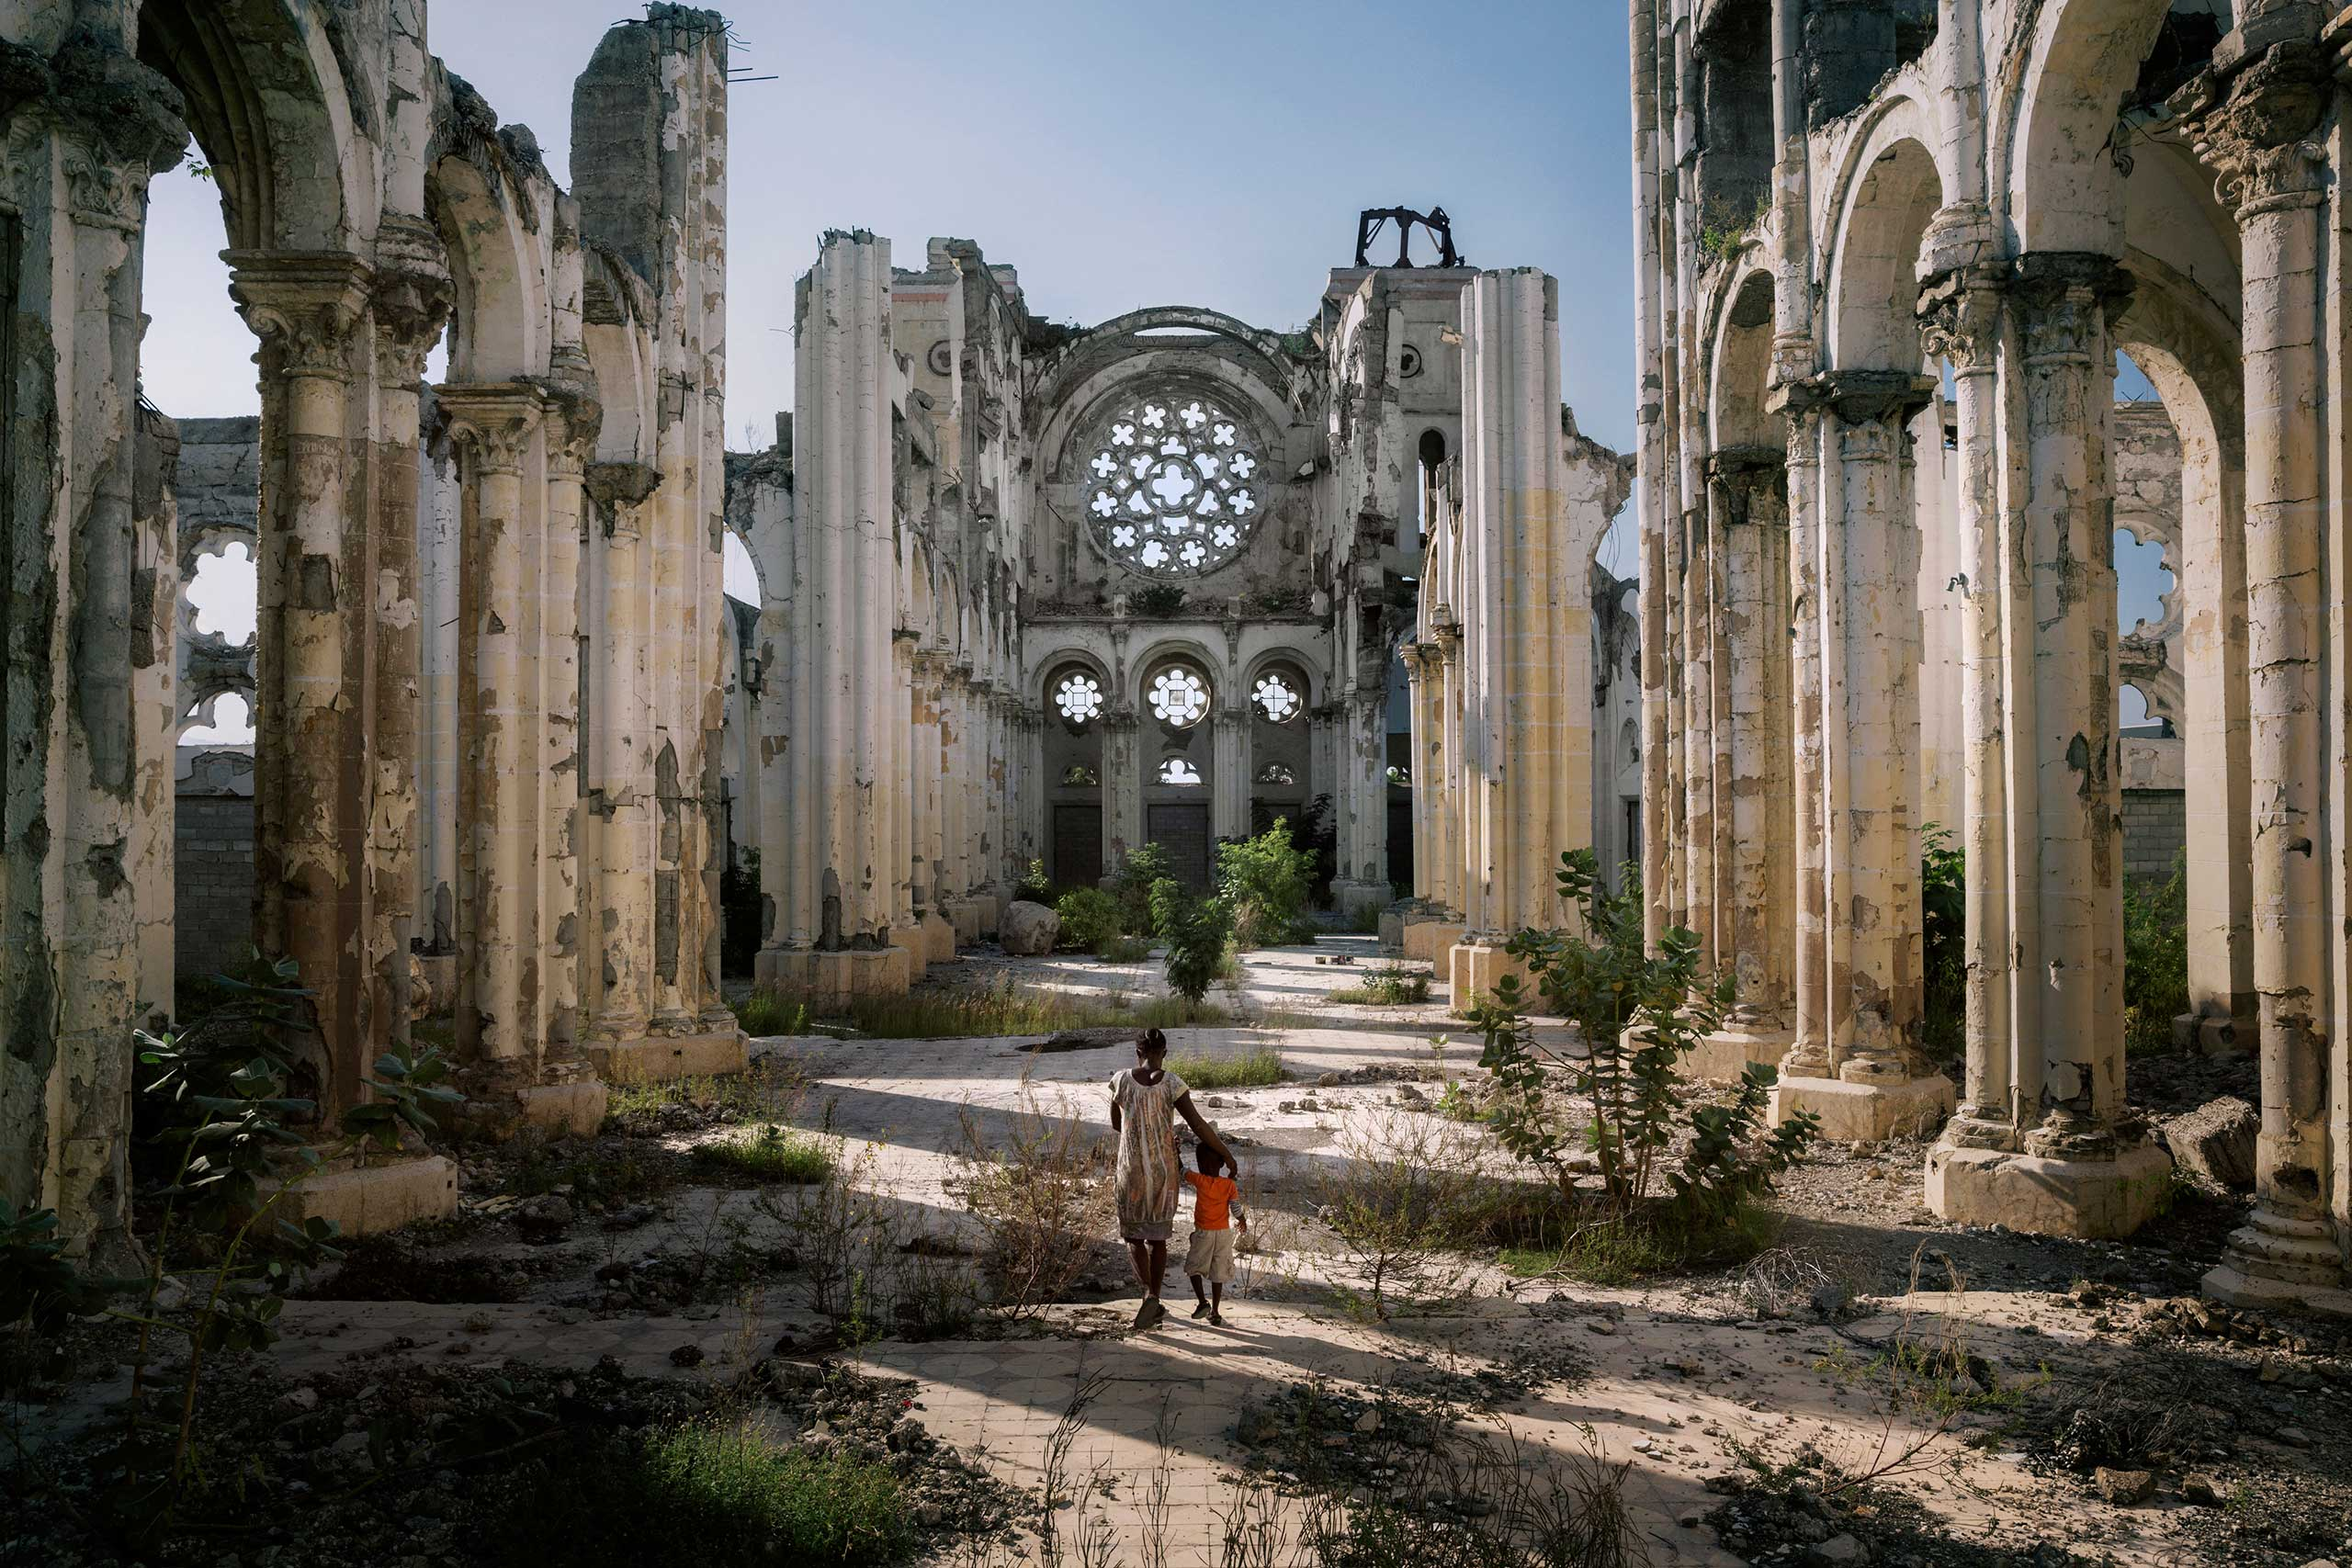 CNN: Five years after the quake: Haiti at a crossroadsThe remains of a cathedral destroyed by the earthquake stand In in the centre of Port Au Prince. No restoration work is planned and the ruins remain a silent witness to the tragedy. Nov. 28, 2014.